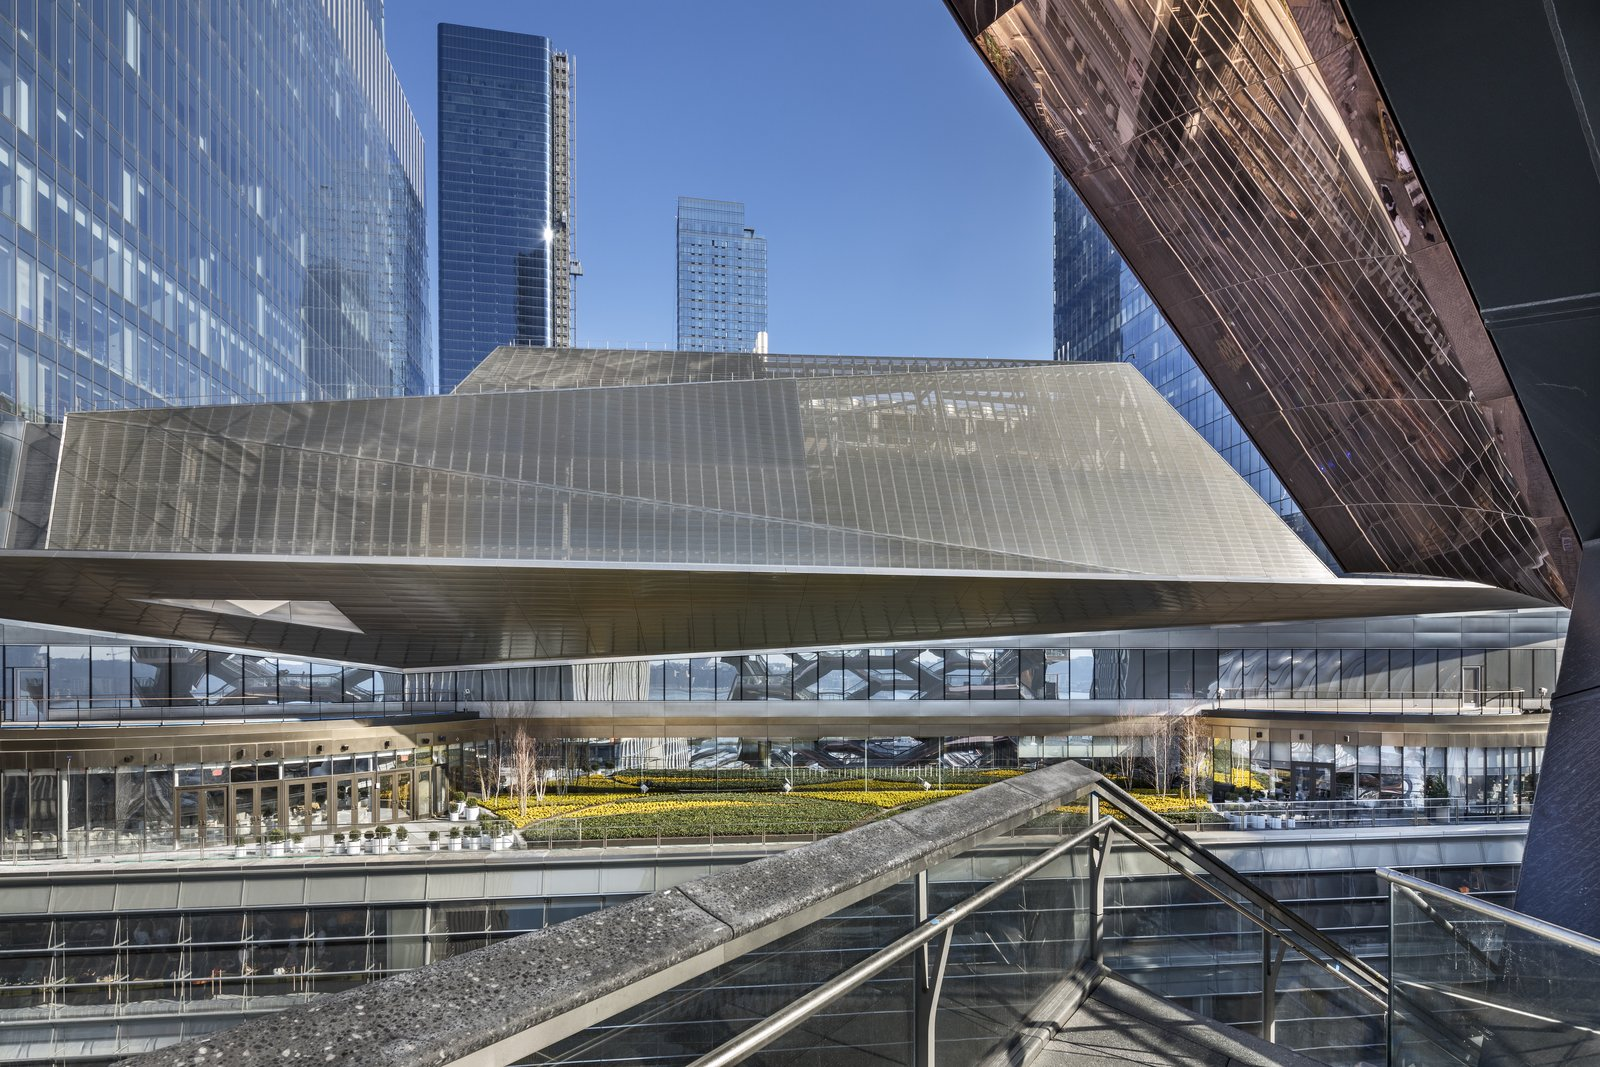 Photo 1 of 7 in A Quick Guide to New York's Hudson Yards, the $25 Billion Mini-City Opening Today